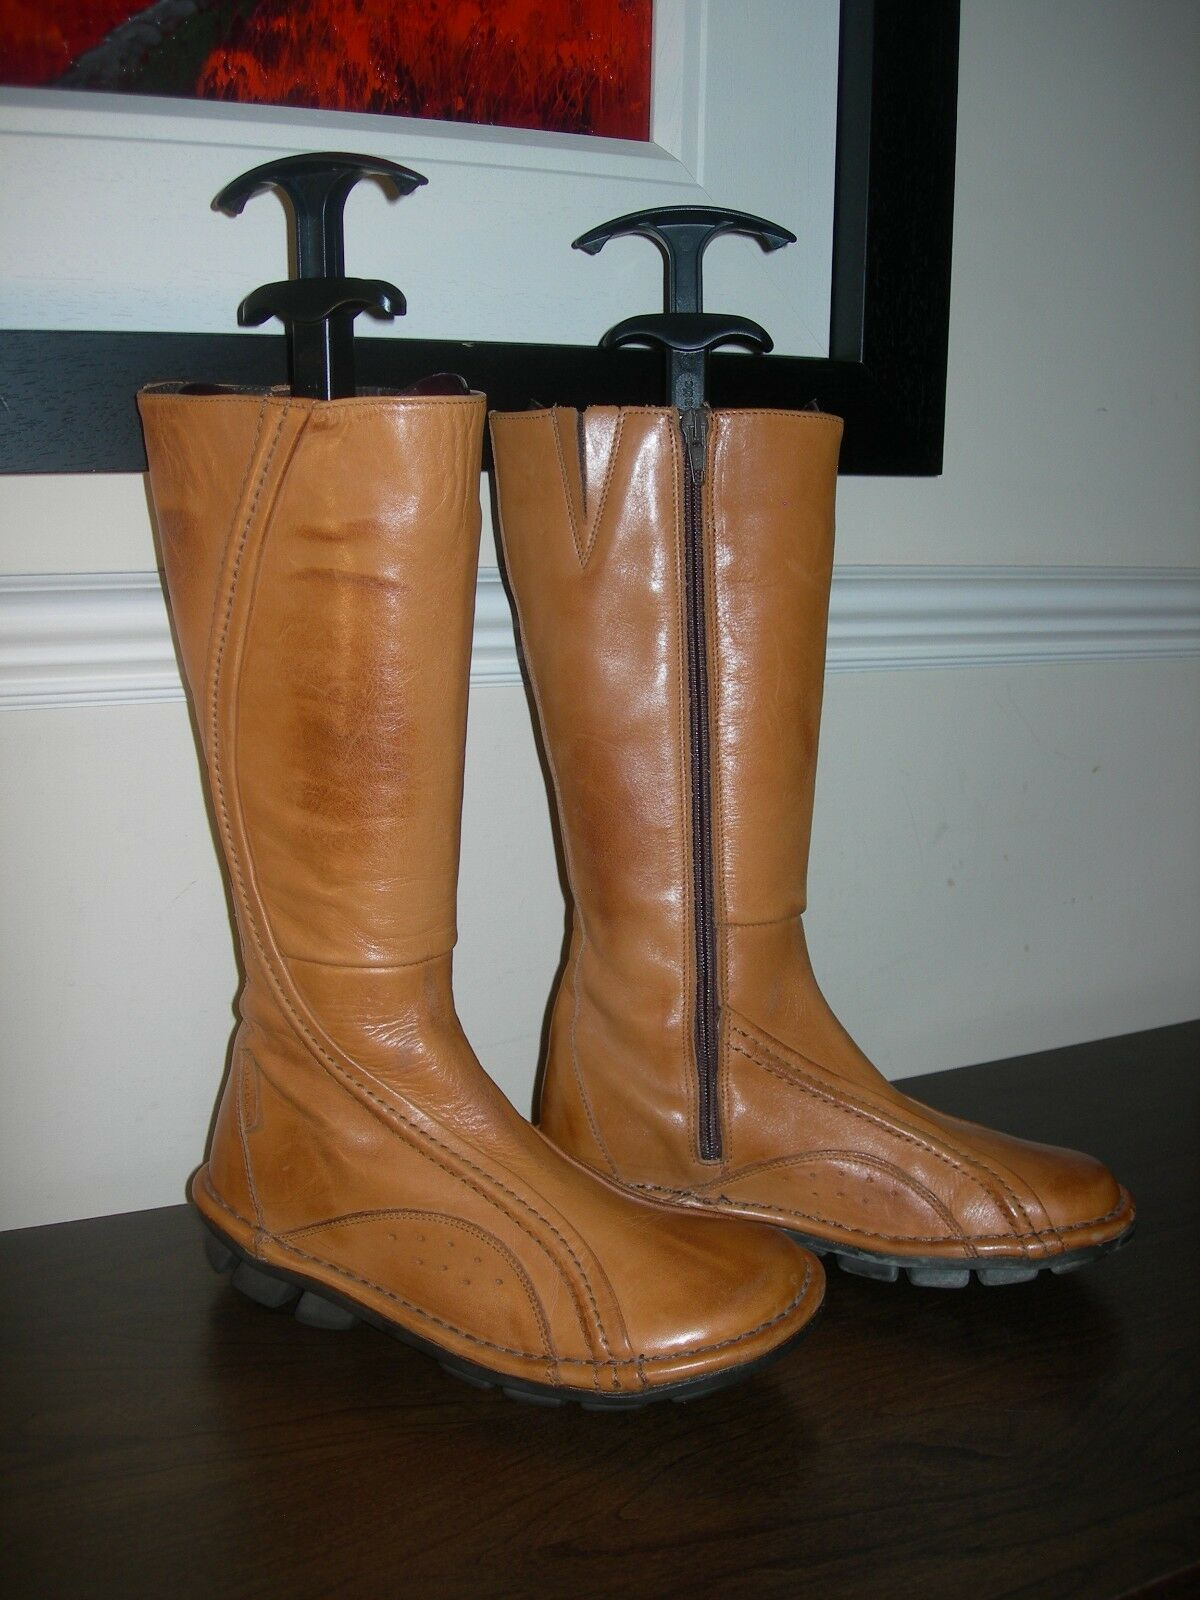 ROT OR DEAD WOMEN'S BOOTS CALF LENGTH CAMEL CARAMEL LEATHER EU 36- 37 / UK 3- 4